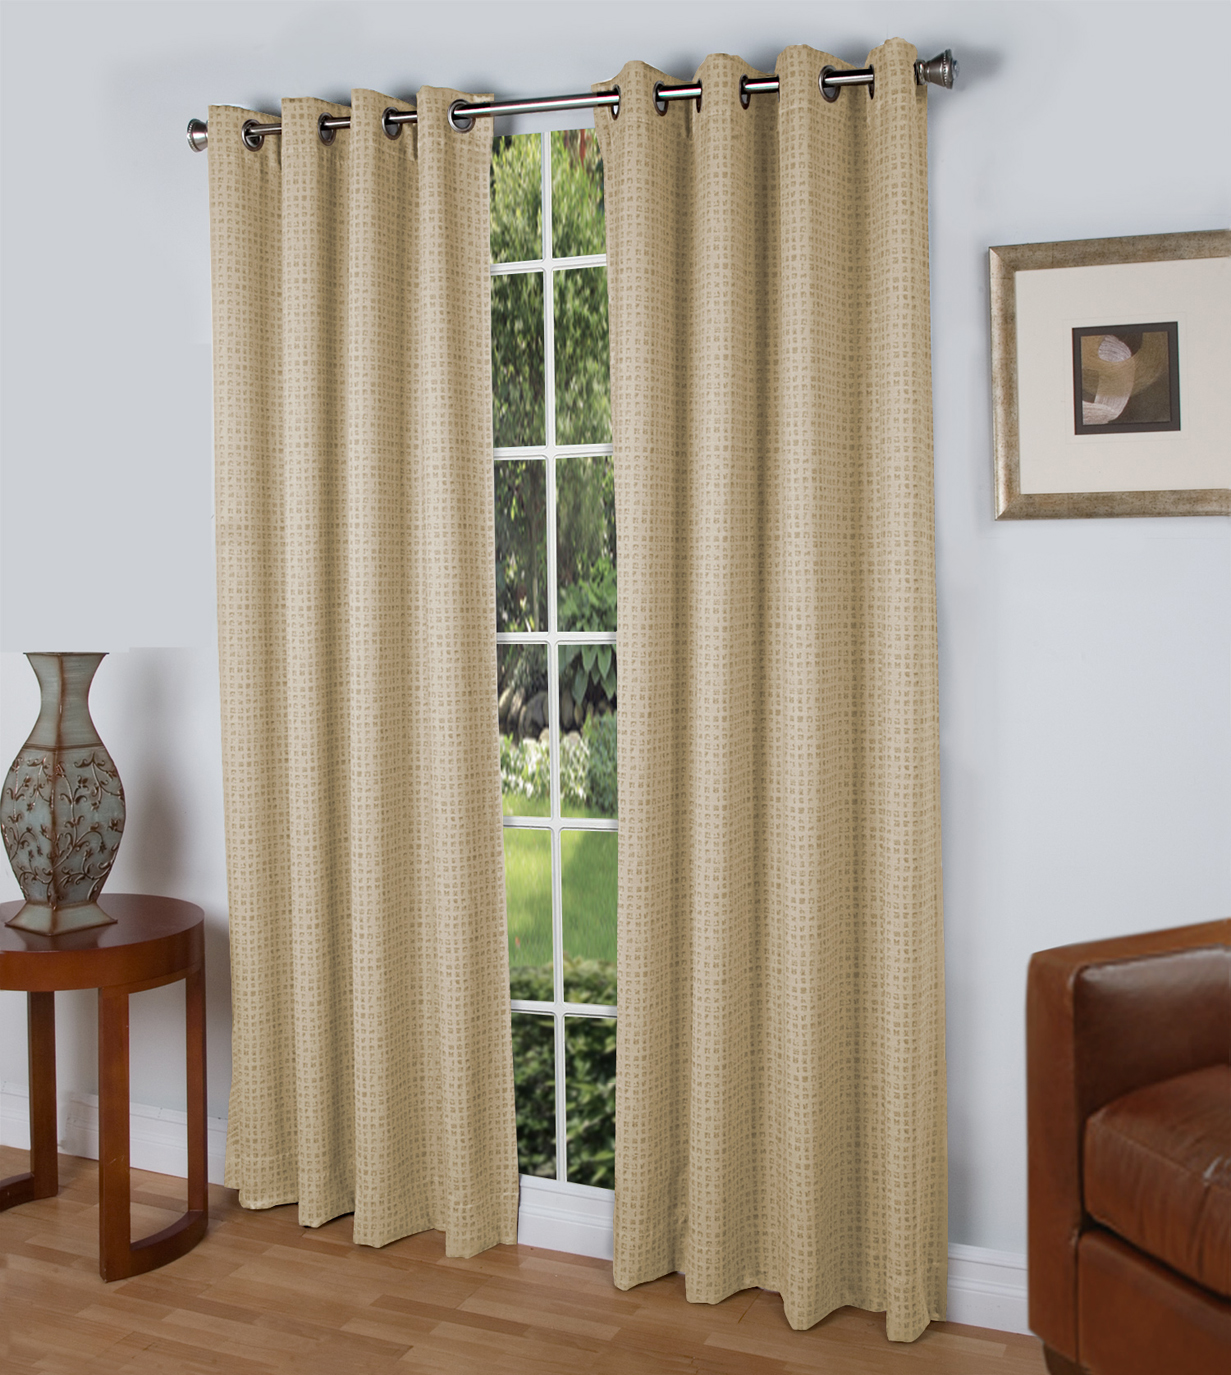 Curtain Insulation Fabric Insulated Curtains Energy Efficient Window Treatments